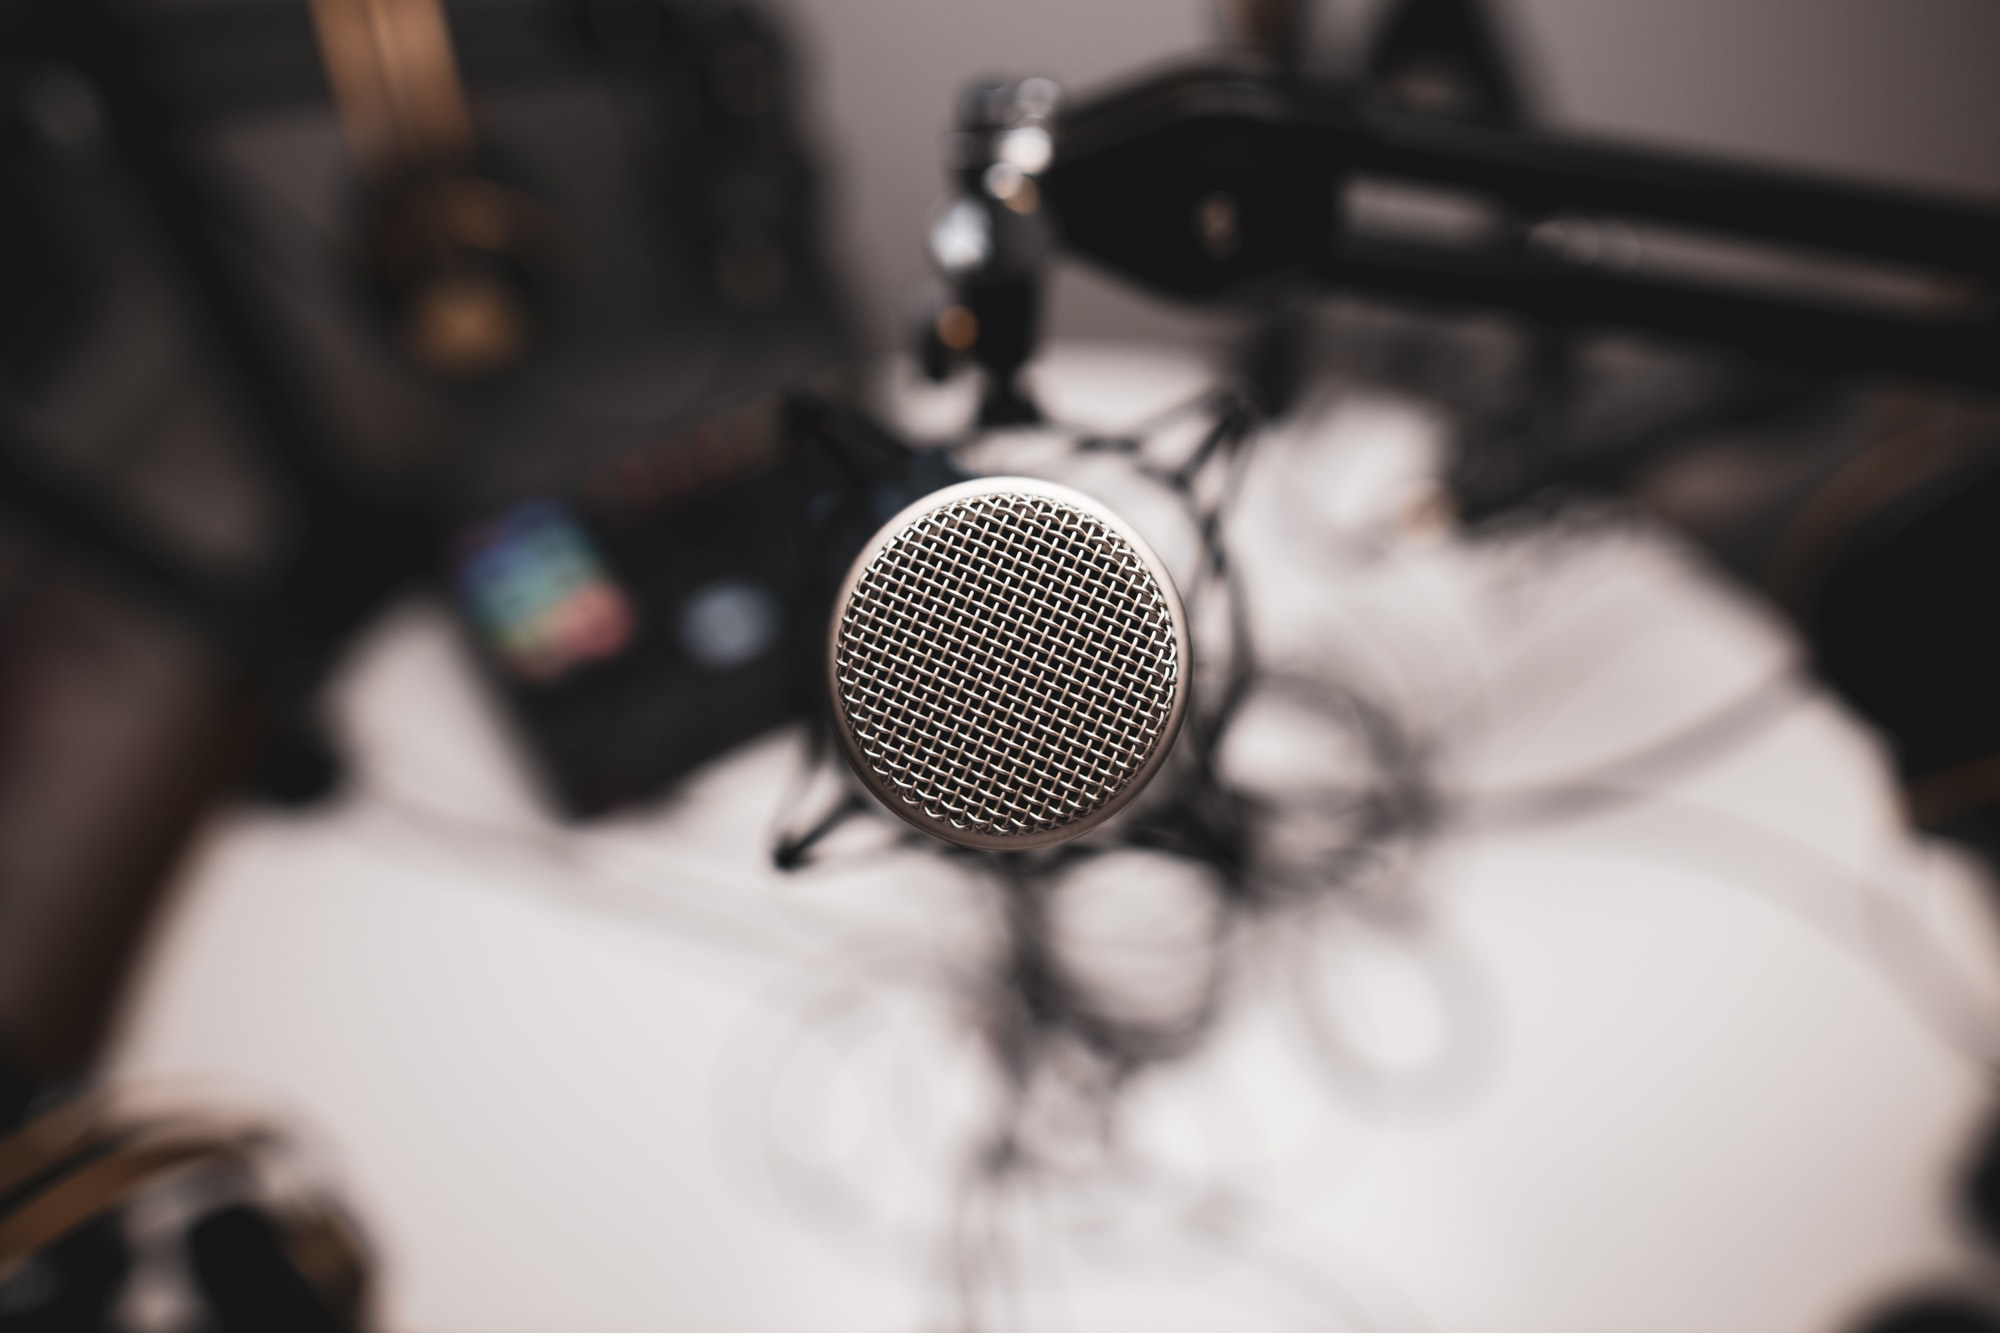 A direct shot of a professional microphone used for podcasting